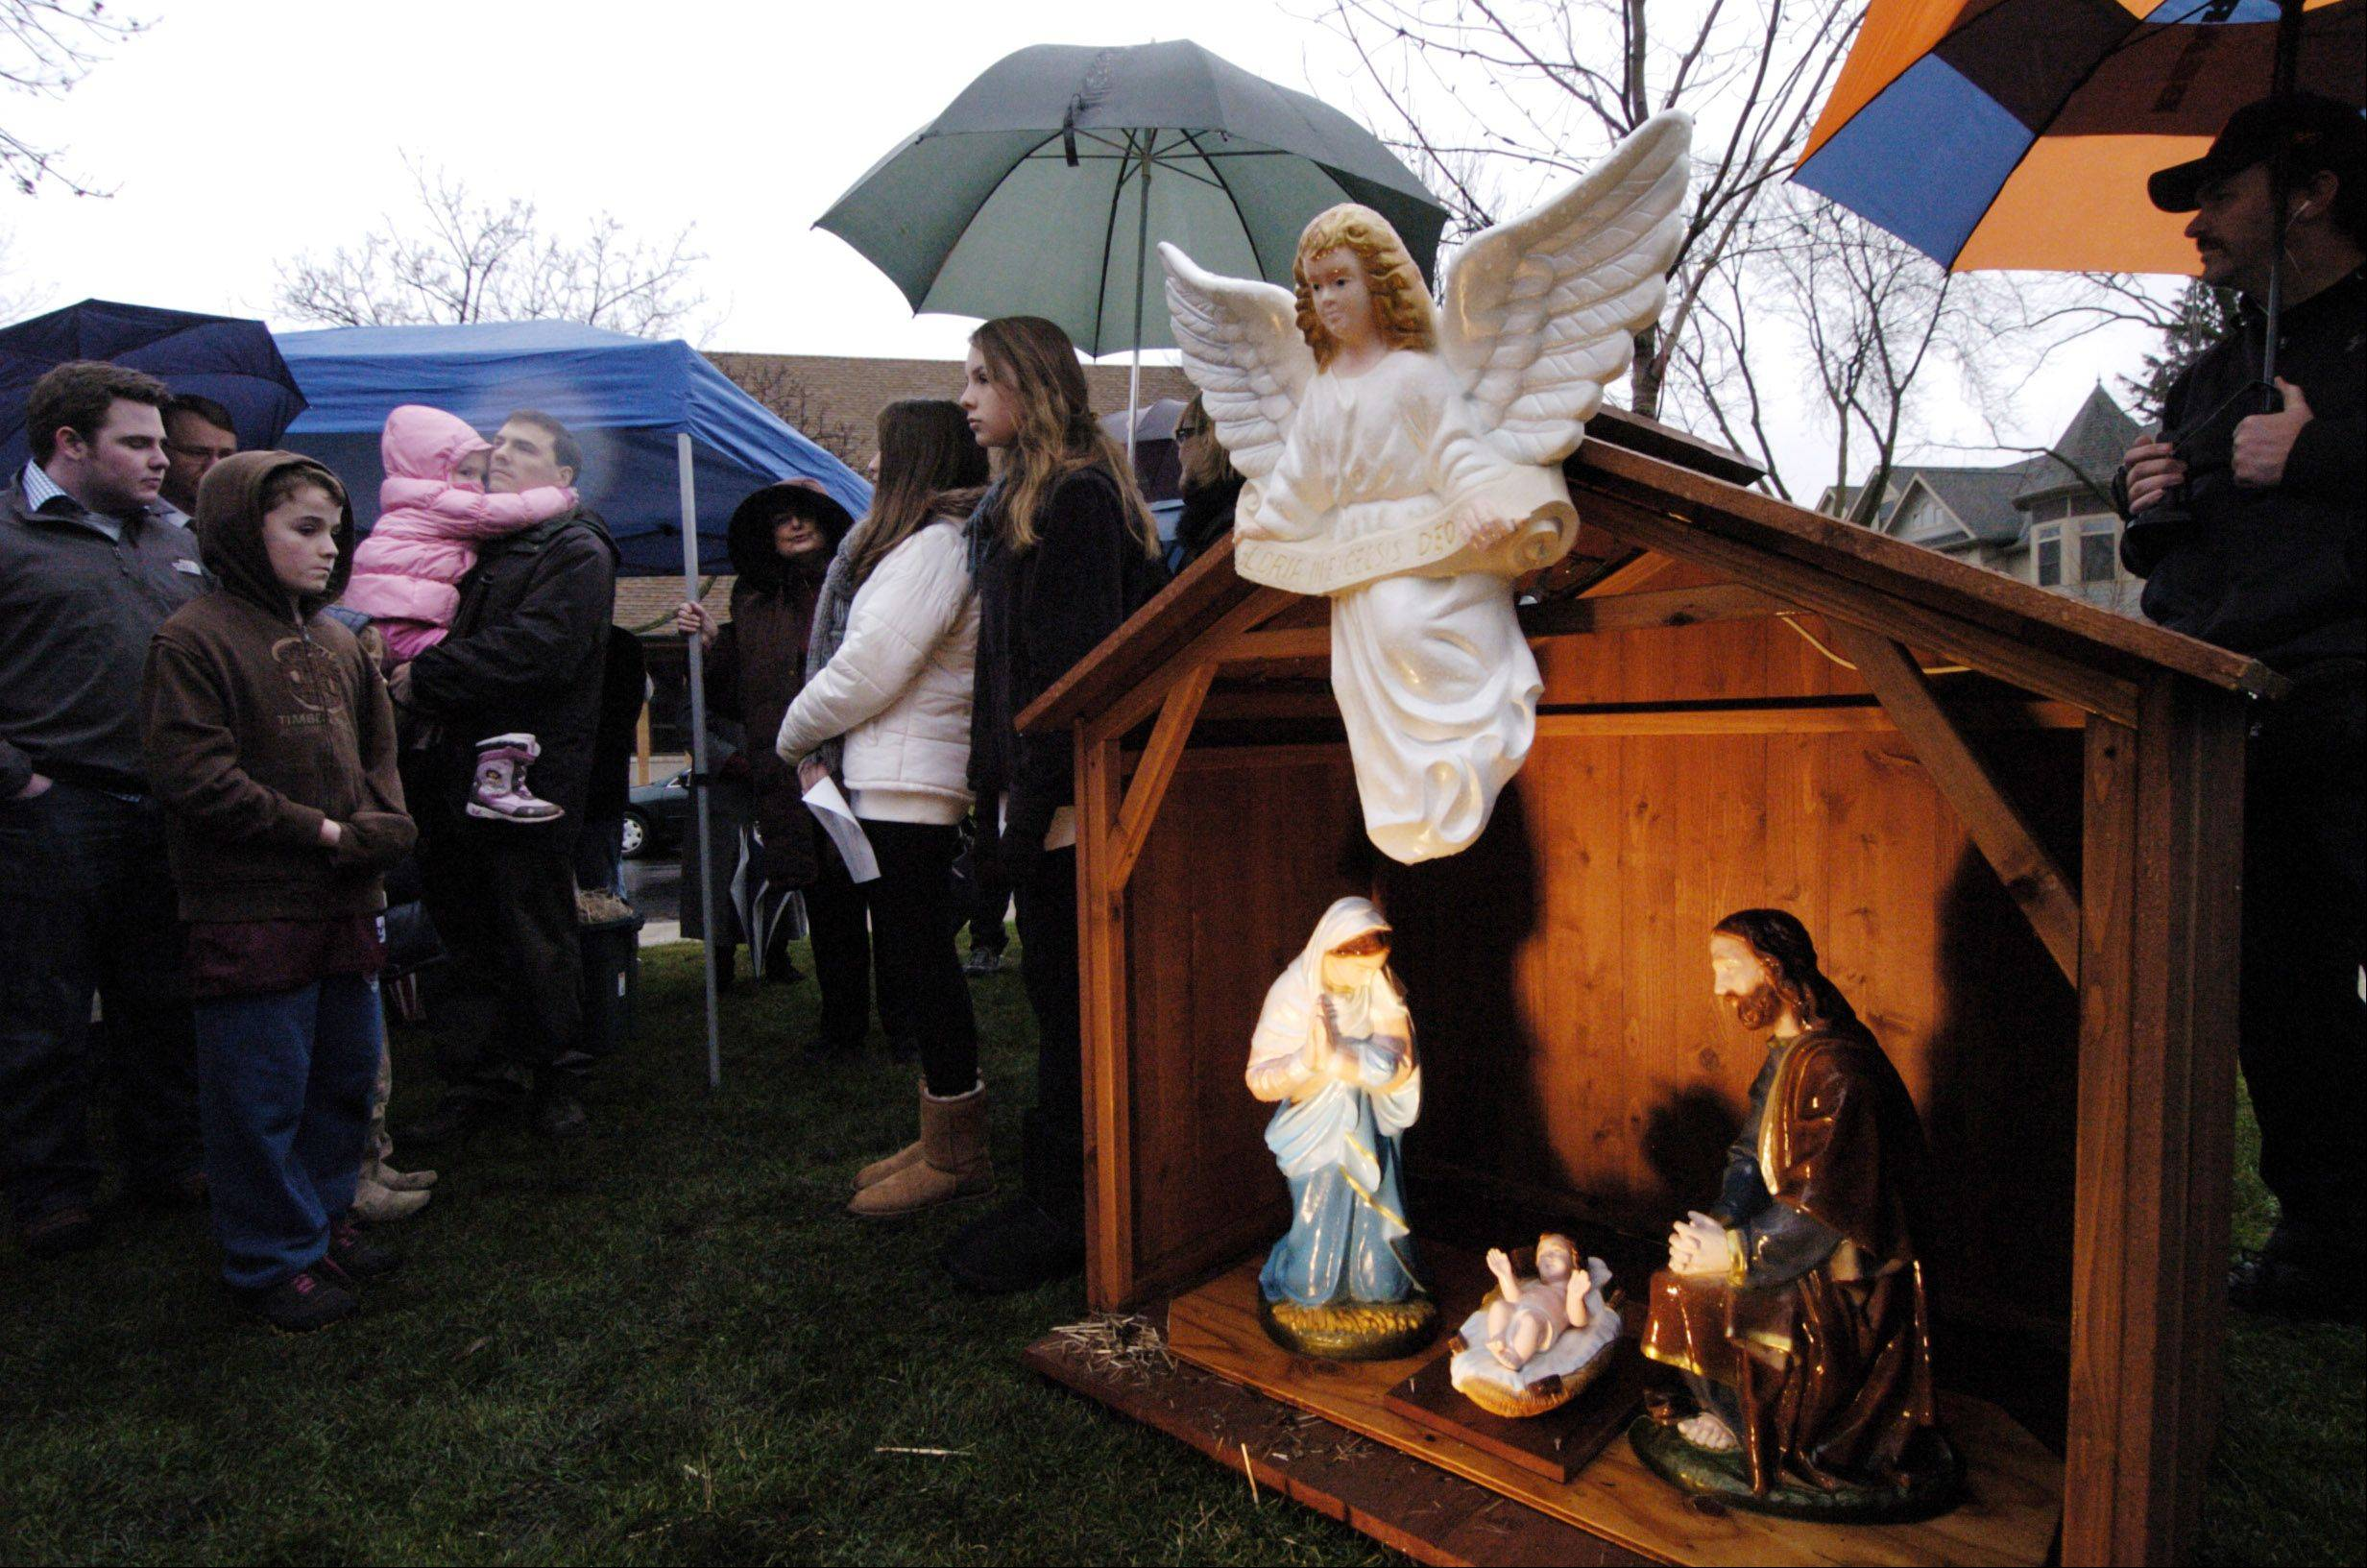 After a few weeks of controversy, a Nativity scene has been added to holiday displays at North School Park in Arlington Heights. Sponsored by the Illinois Nativity Scene Committee, the display is separated from other holiday decorations by a small fence and a sign.